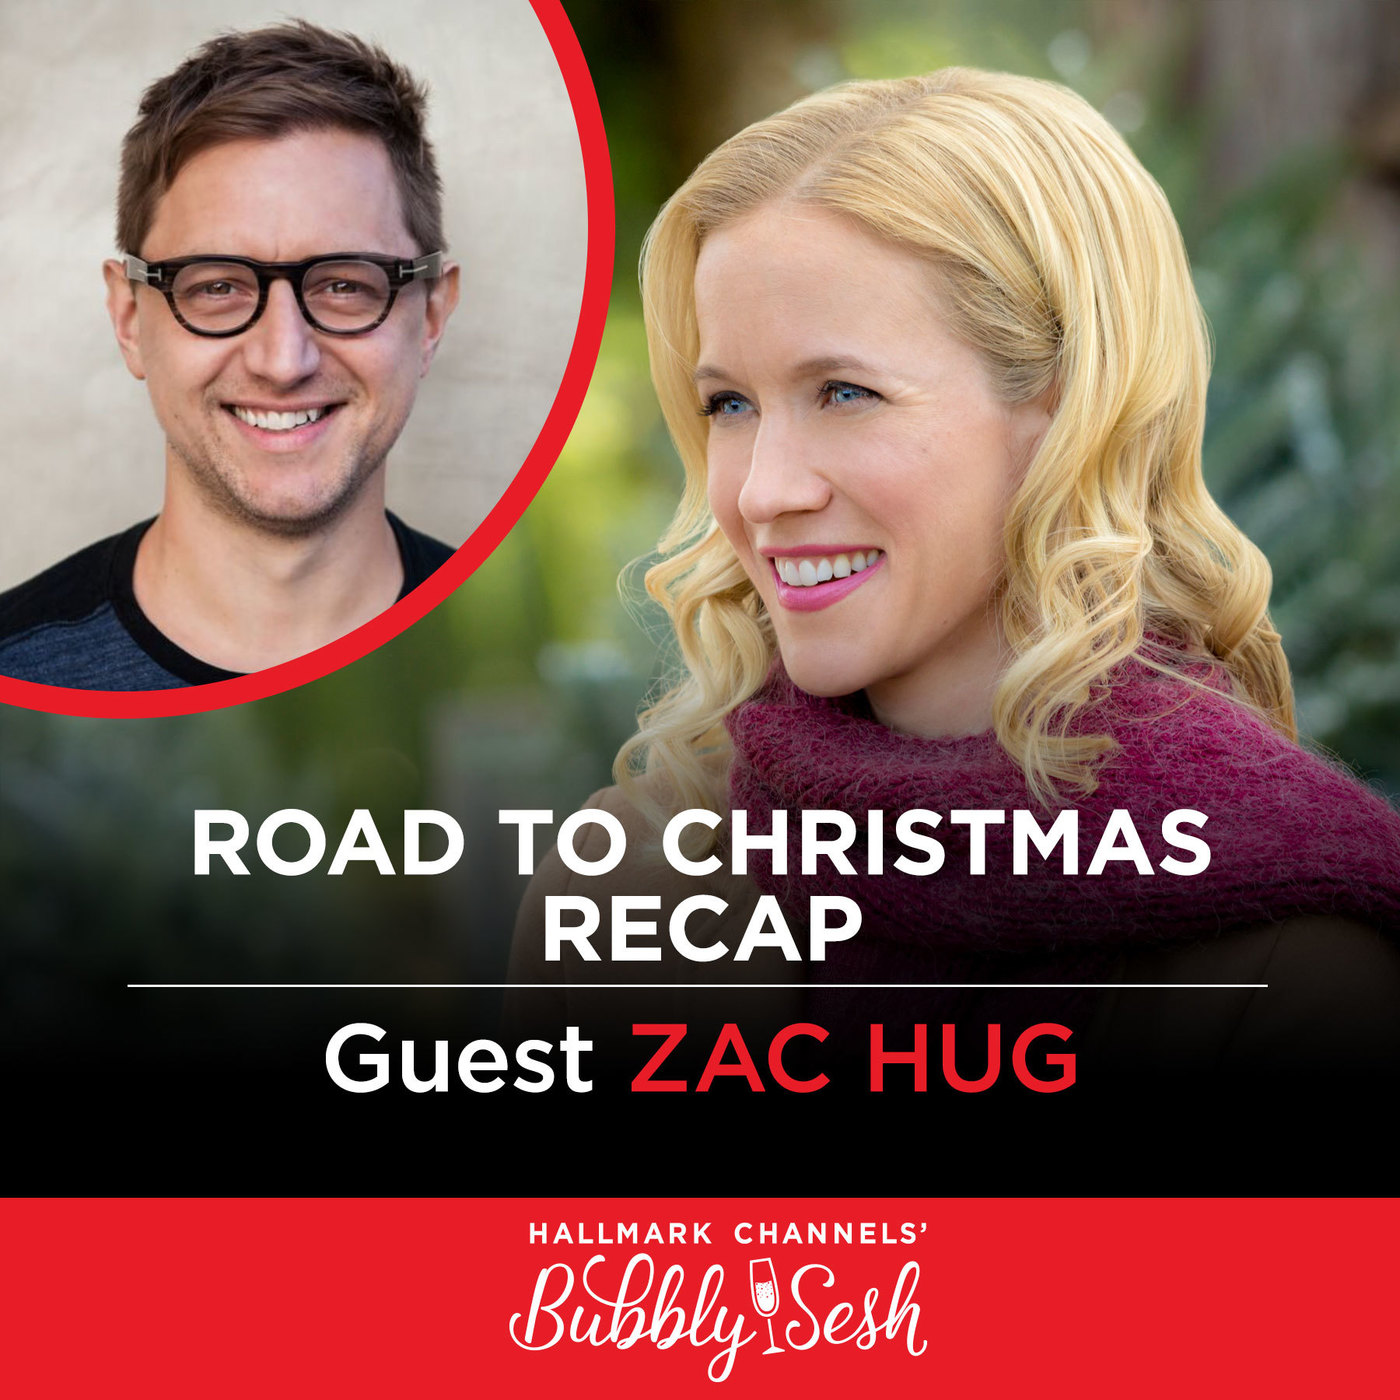 Road to Christmas Recap with Guest Zac Hug